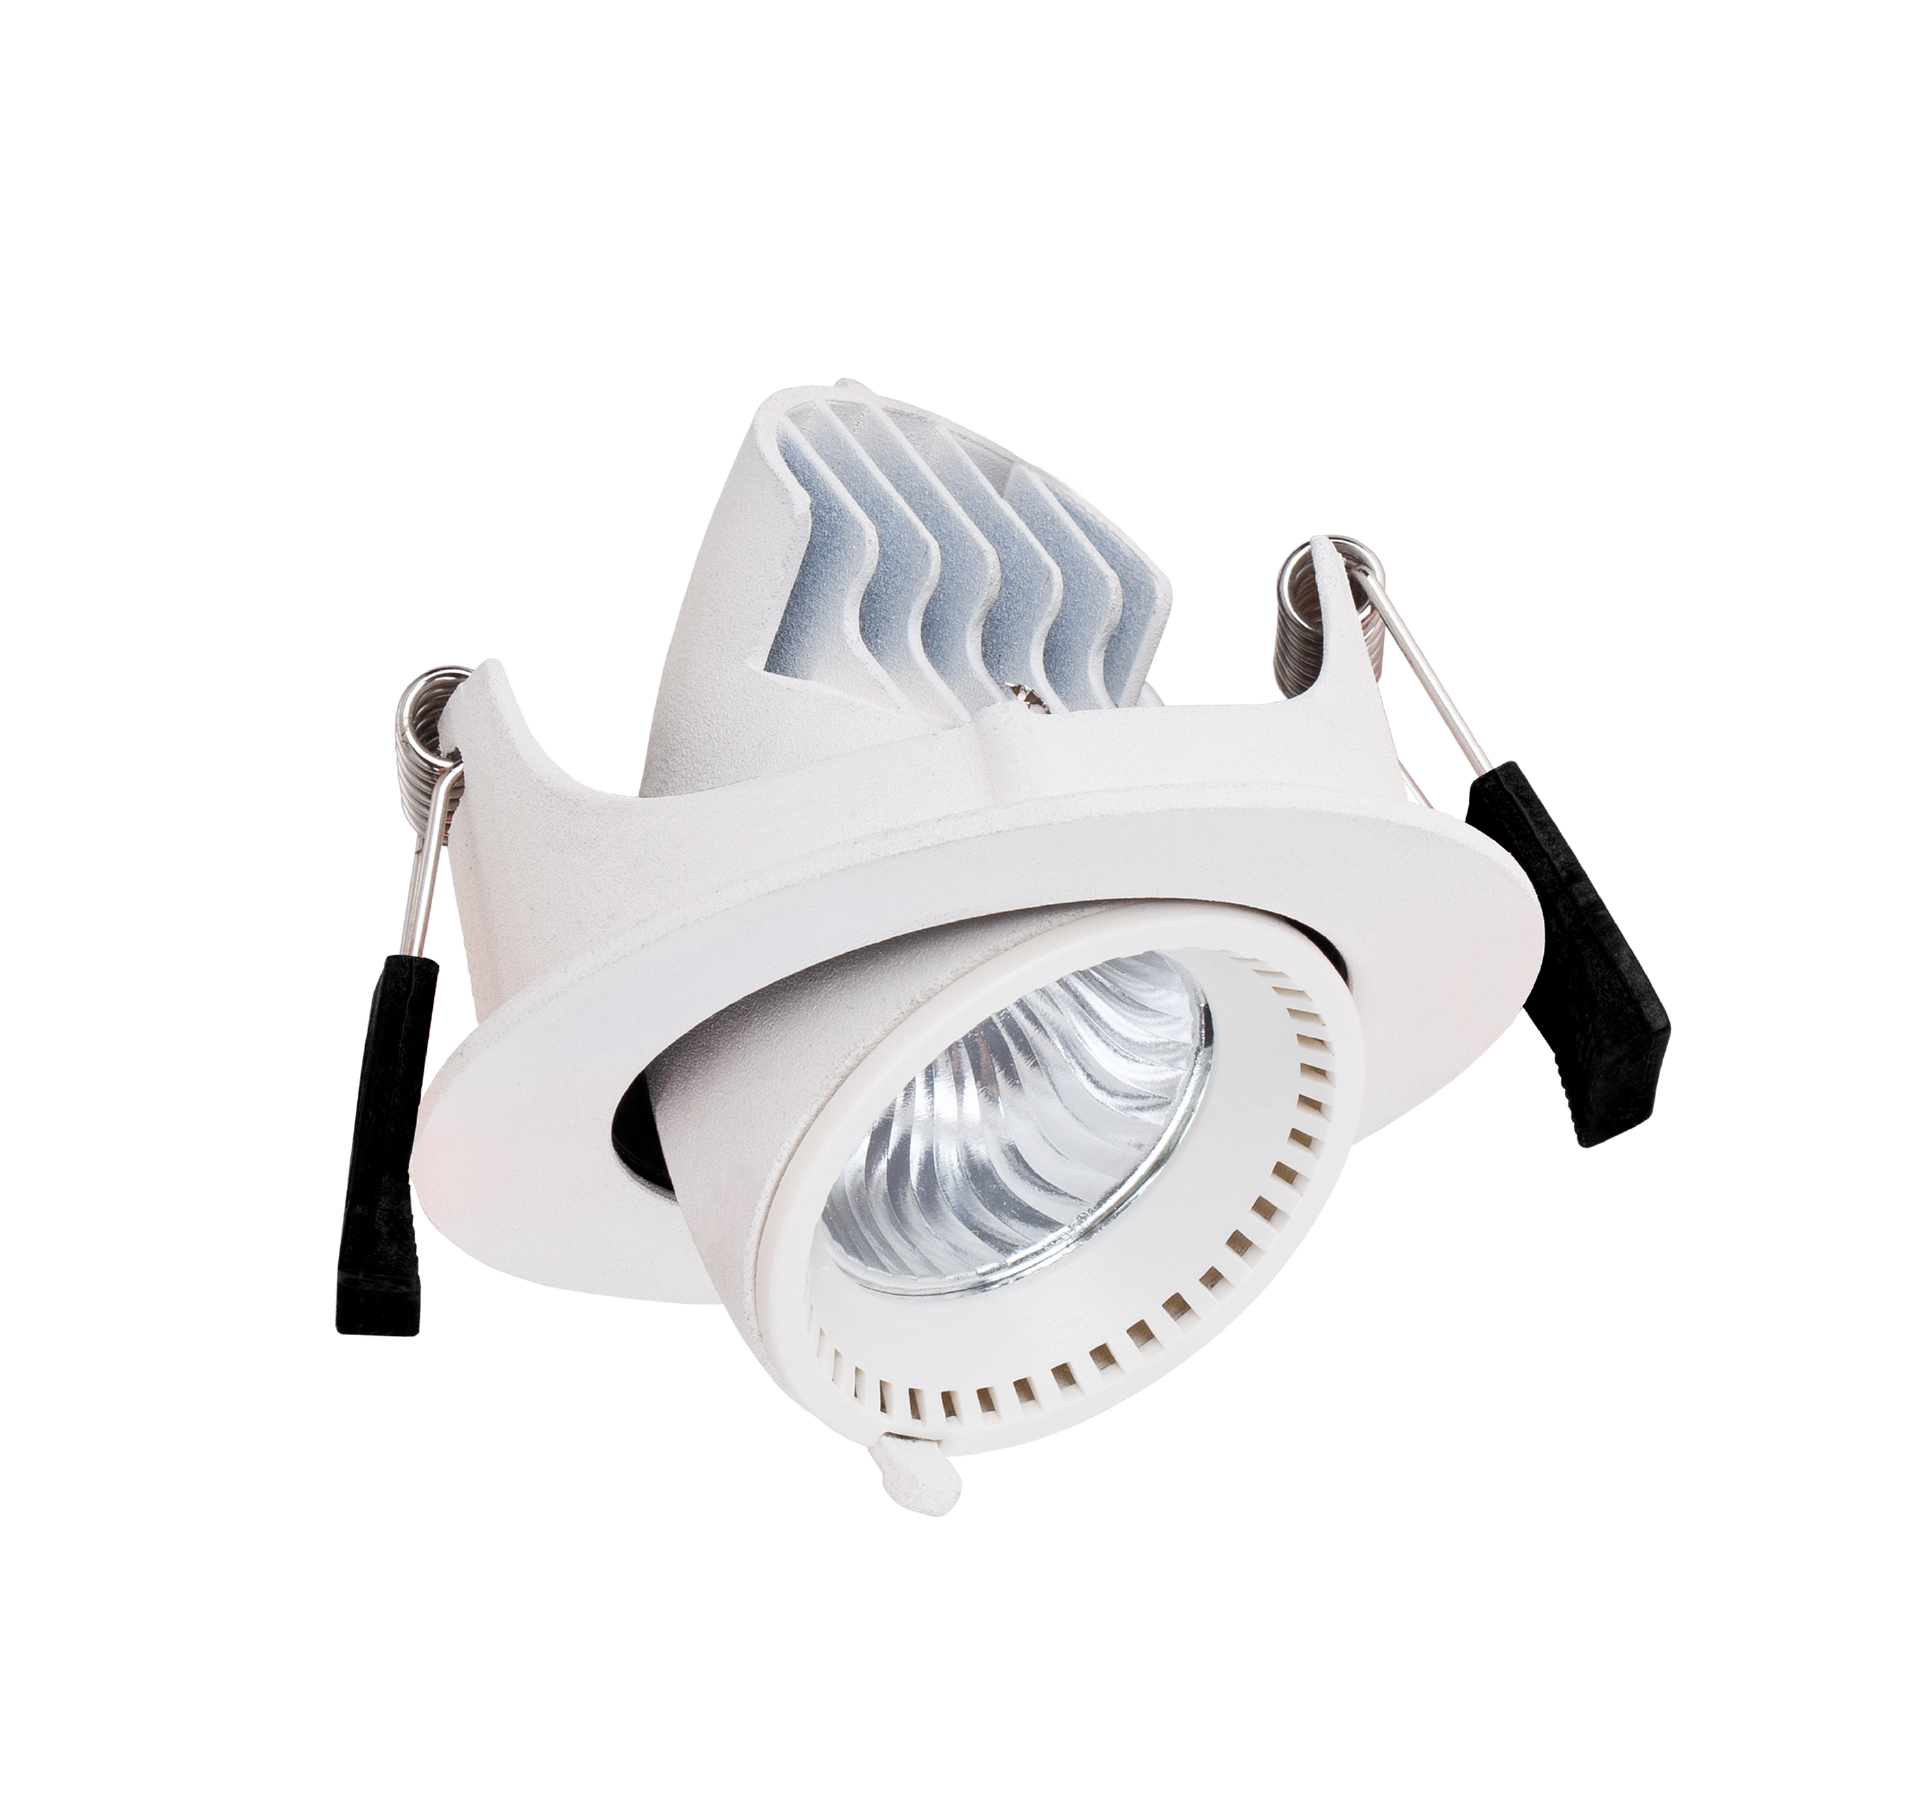 ETDL Rotatable LED Downlight 10W